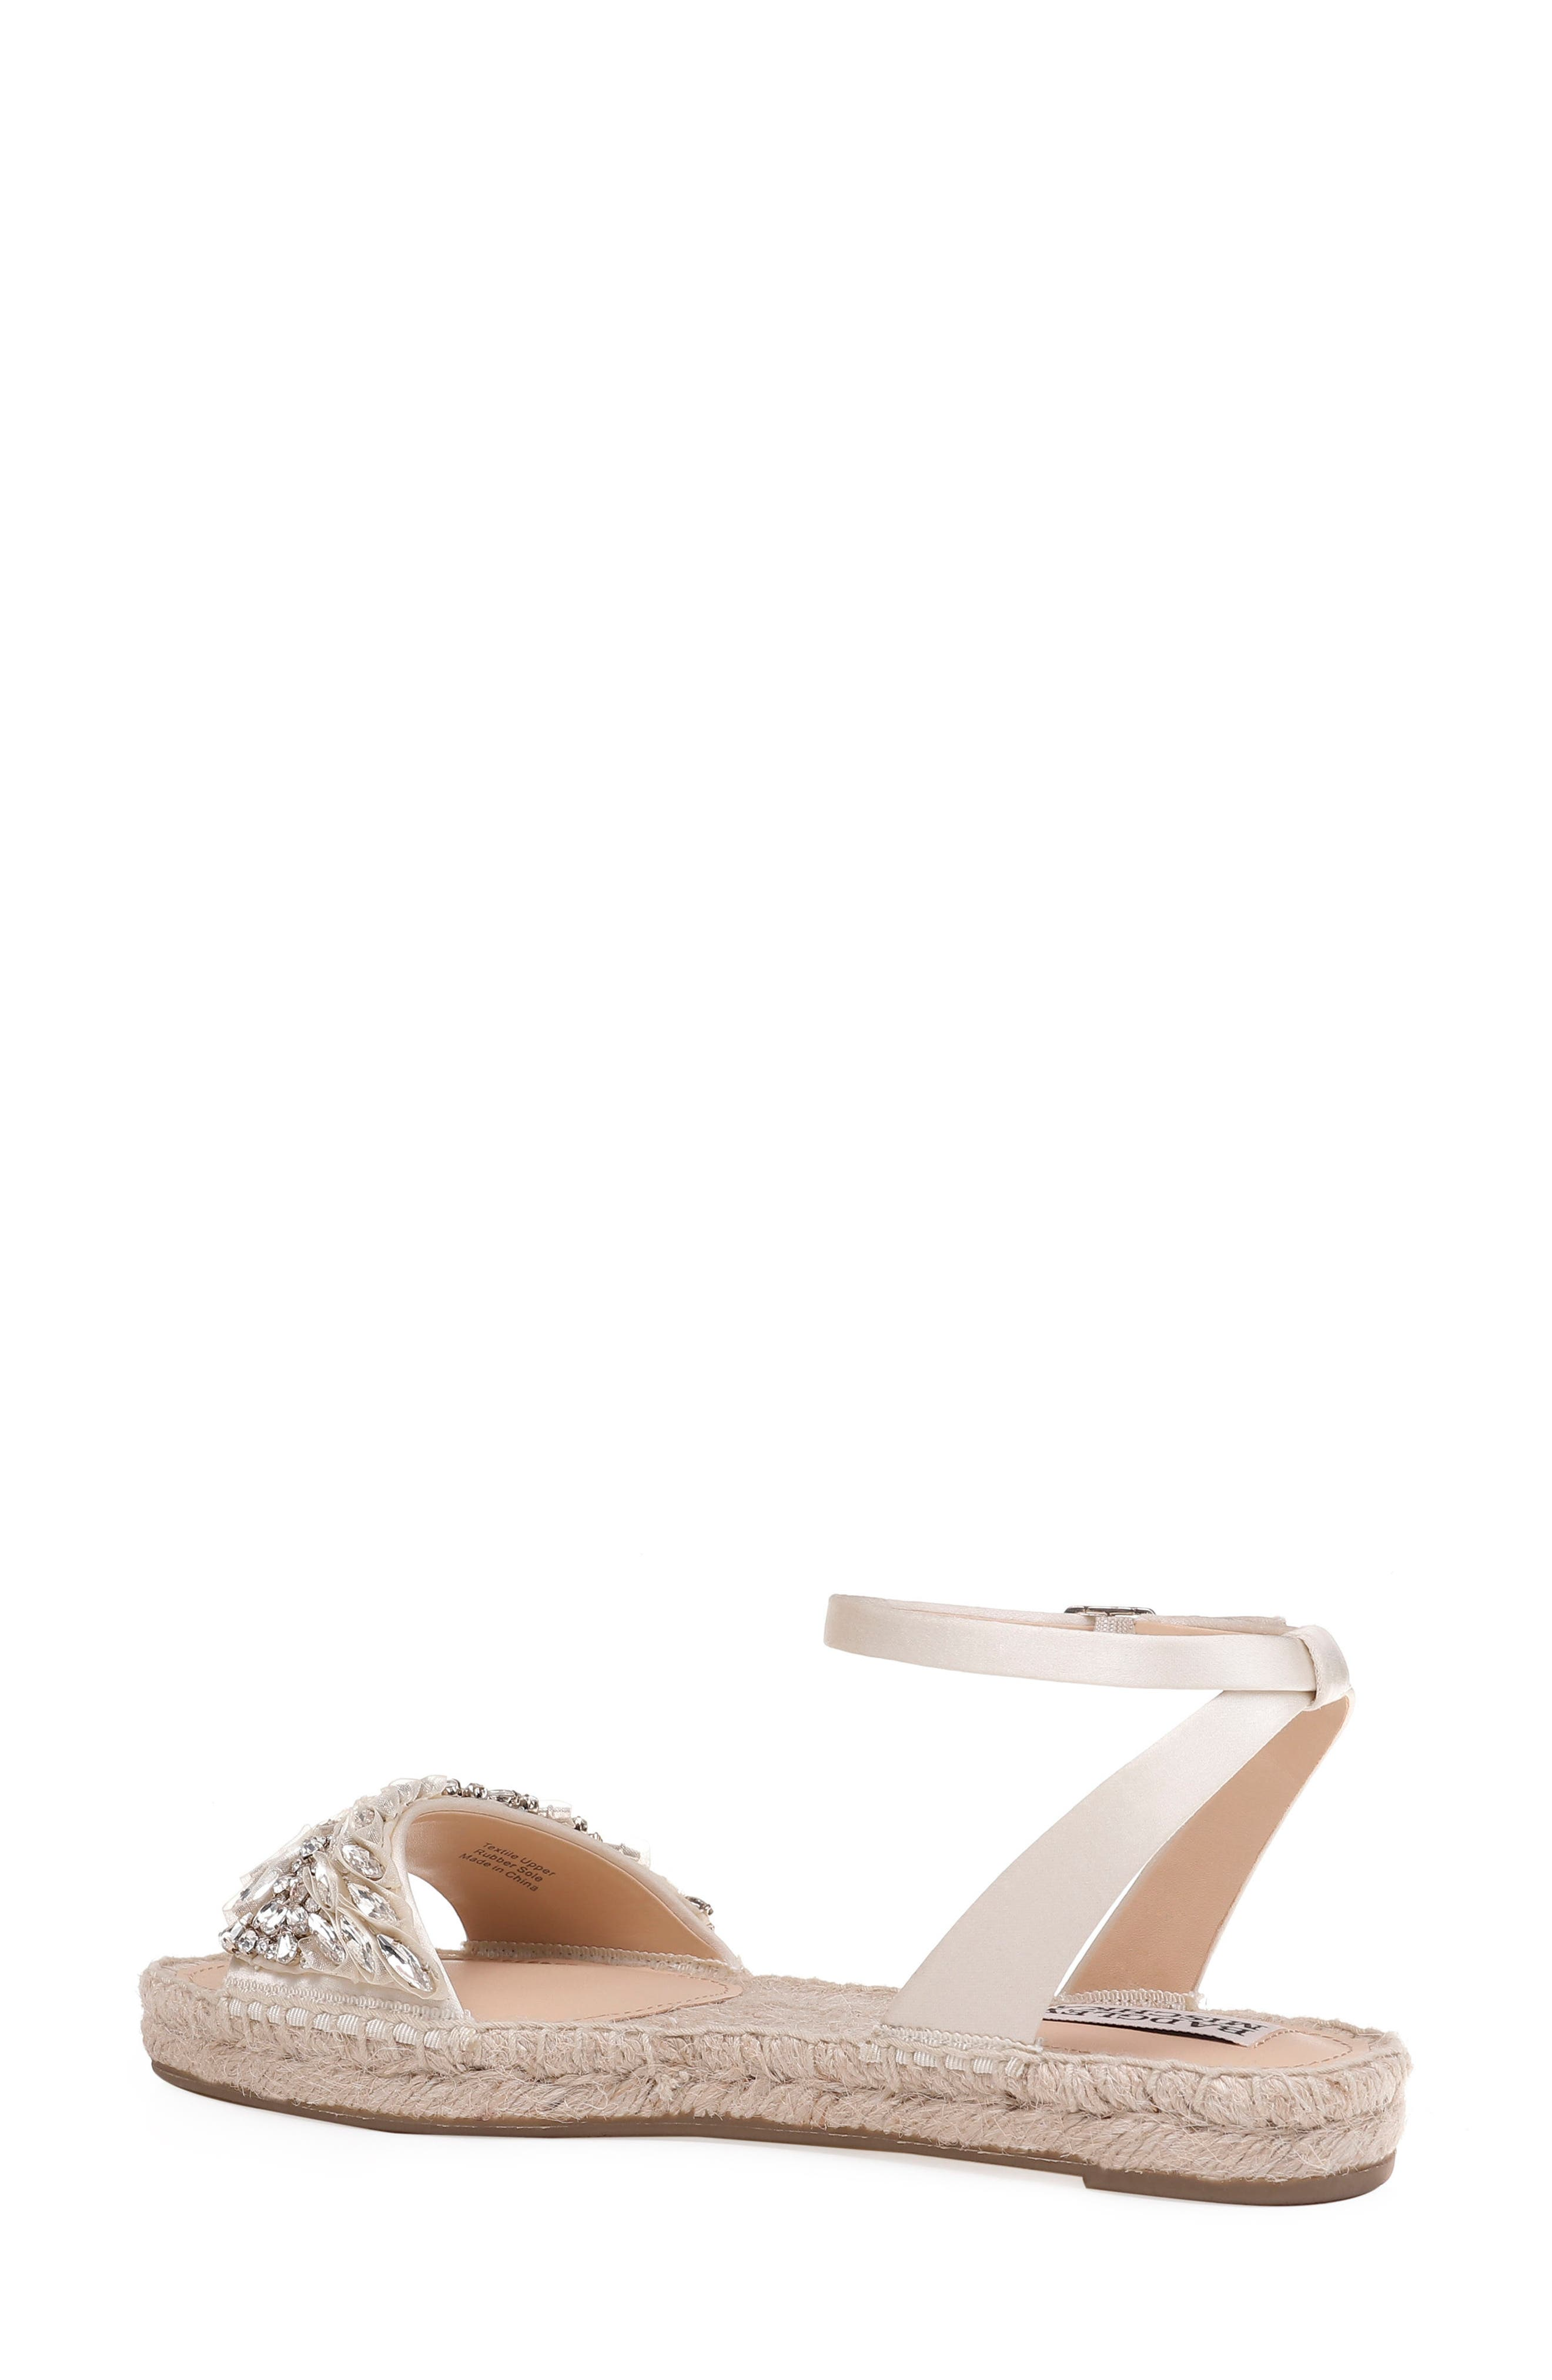 Satine Espadrille Sandal,                             Alternate thumbnail 2, color,                             Ivory Satin